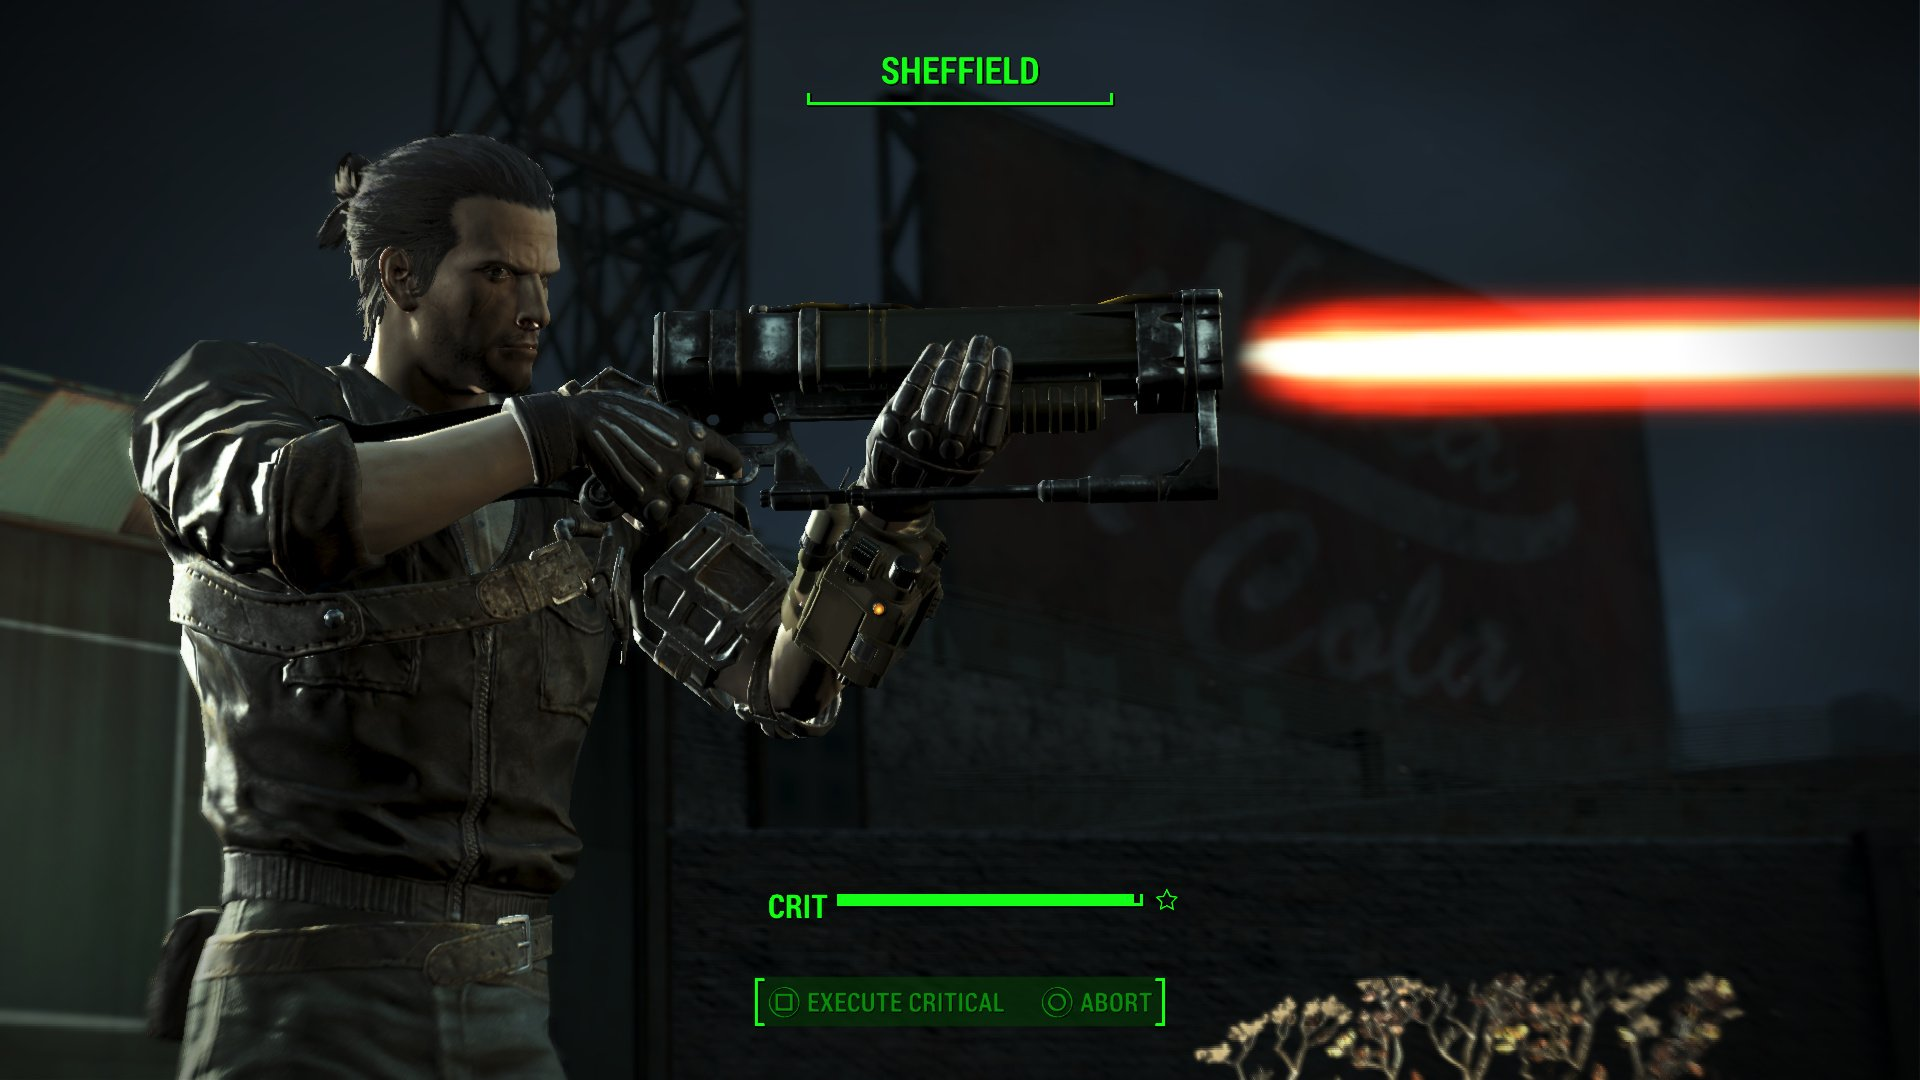 Fallout New Vegas Sneak Sniper Build